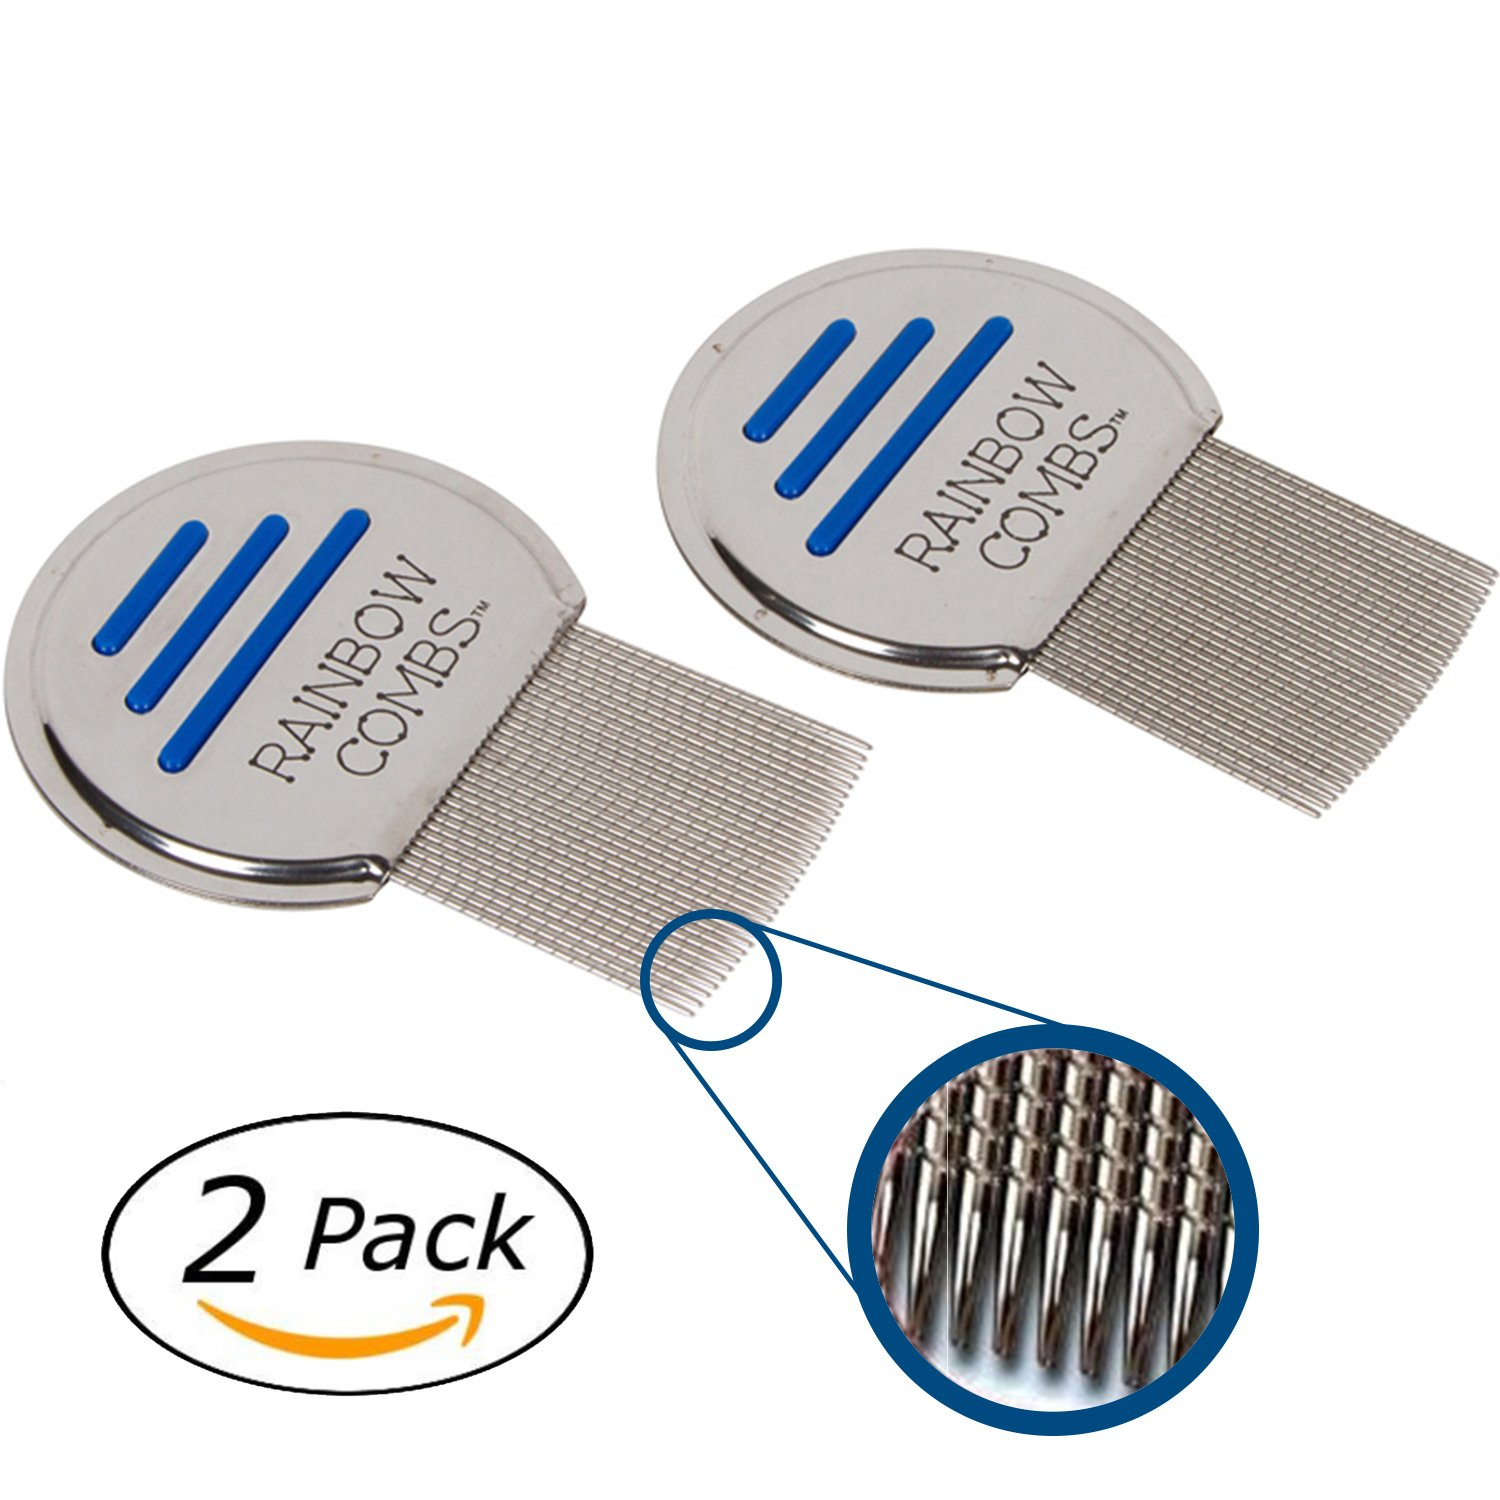 (2 Pack) Rainbow Combs- Stainless Steel  Style Fine Tooth Lice Comb, Effective Treatment to Remove Head Lice and Nits in Kids or Adults (peine para piojos y liendres)